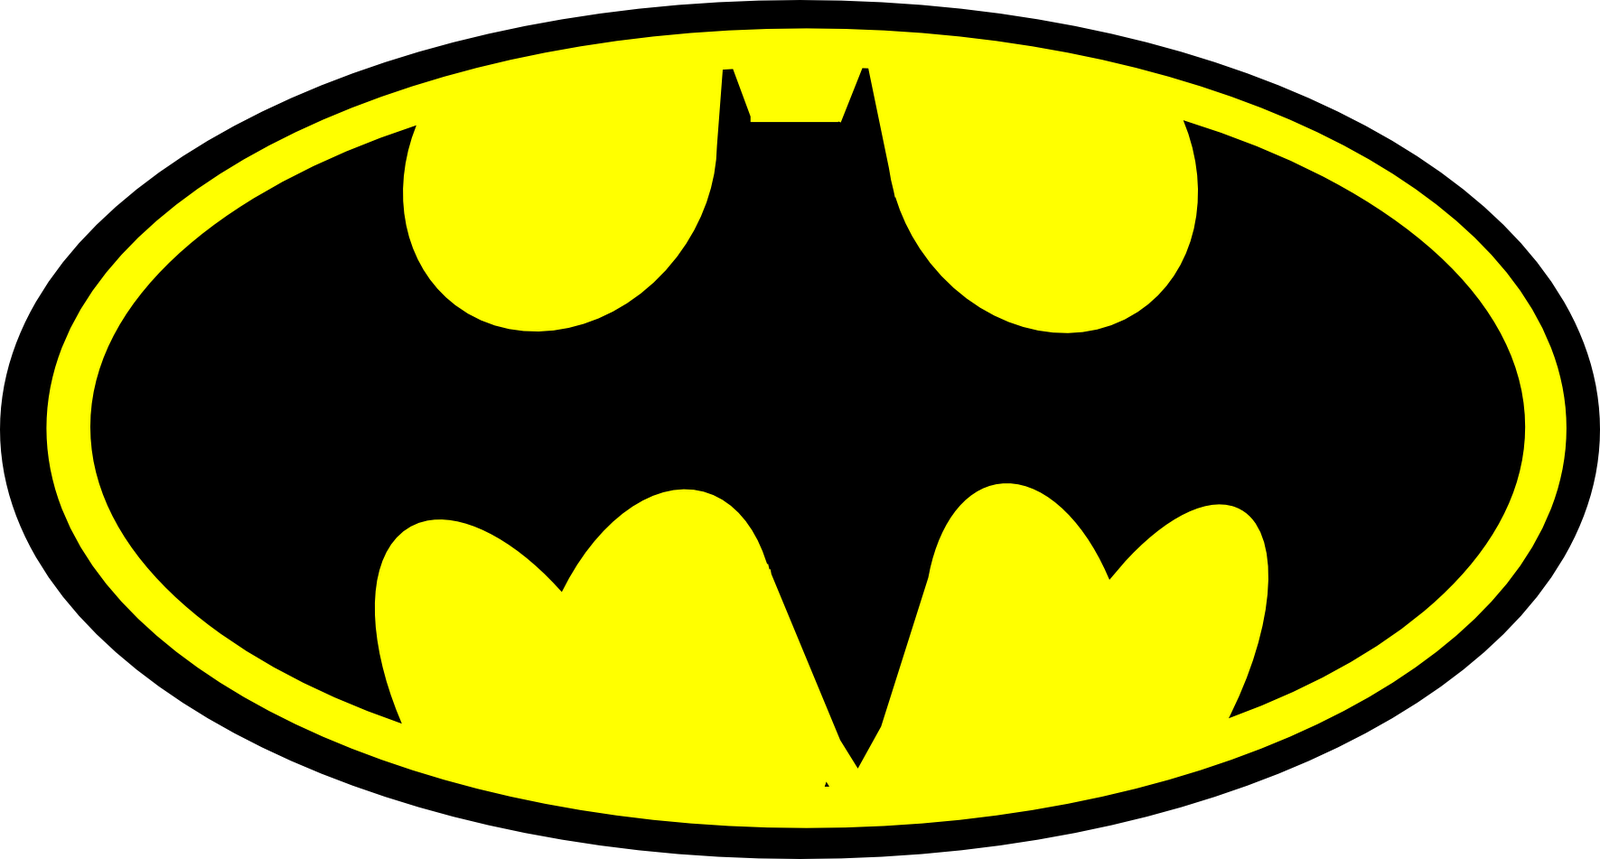 Clipart of batman logo image transparent library Batman Transparent Background Clipart - Clipart Kid image transparent library